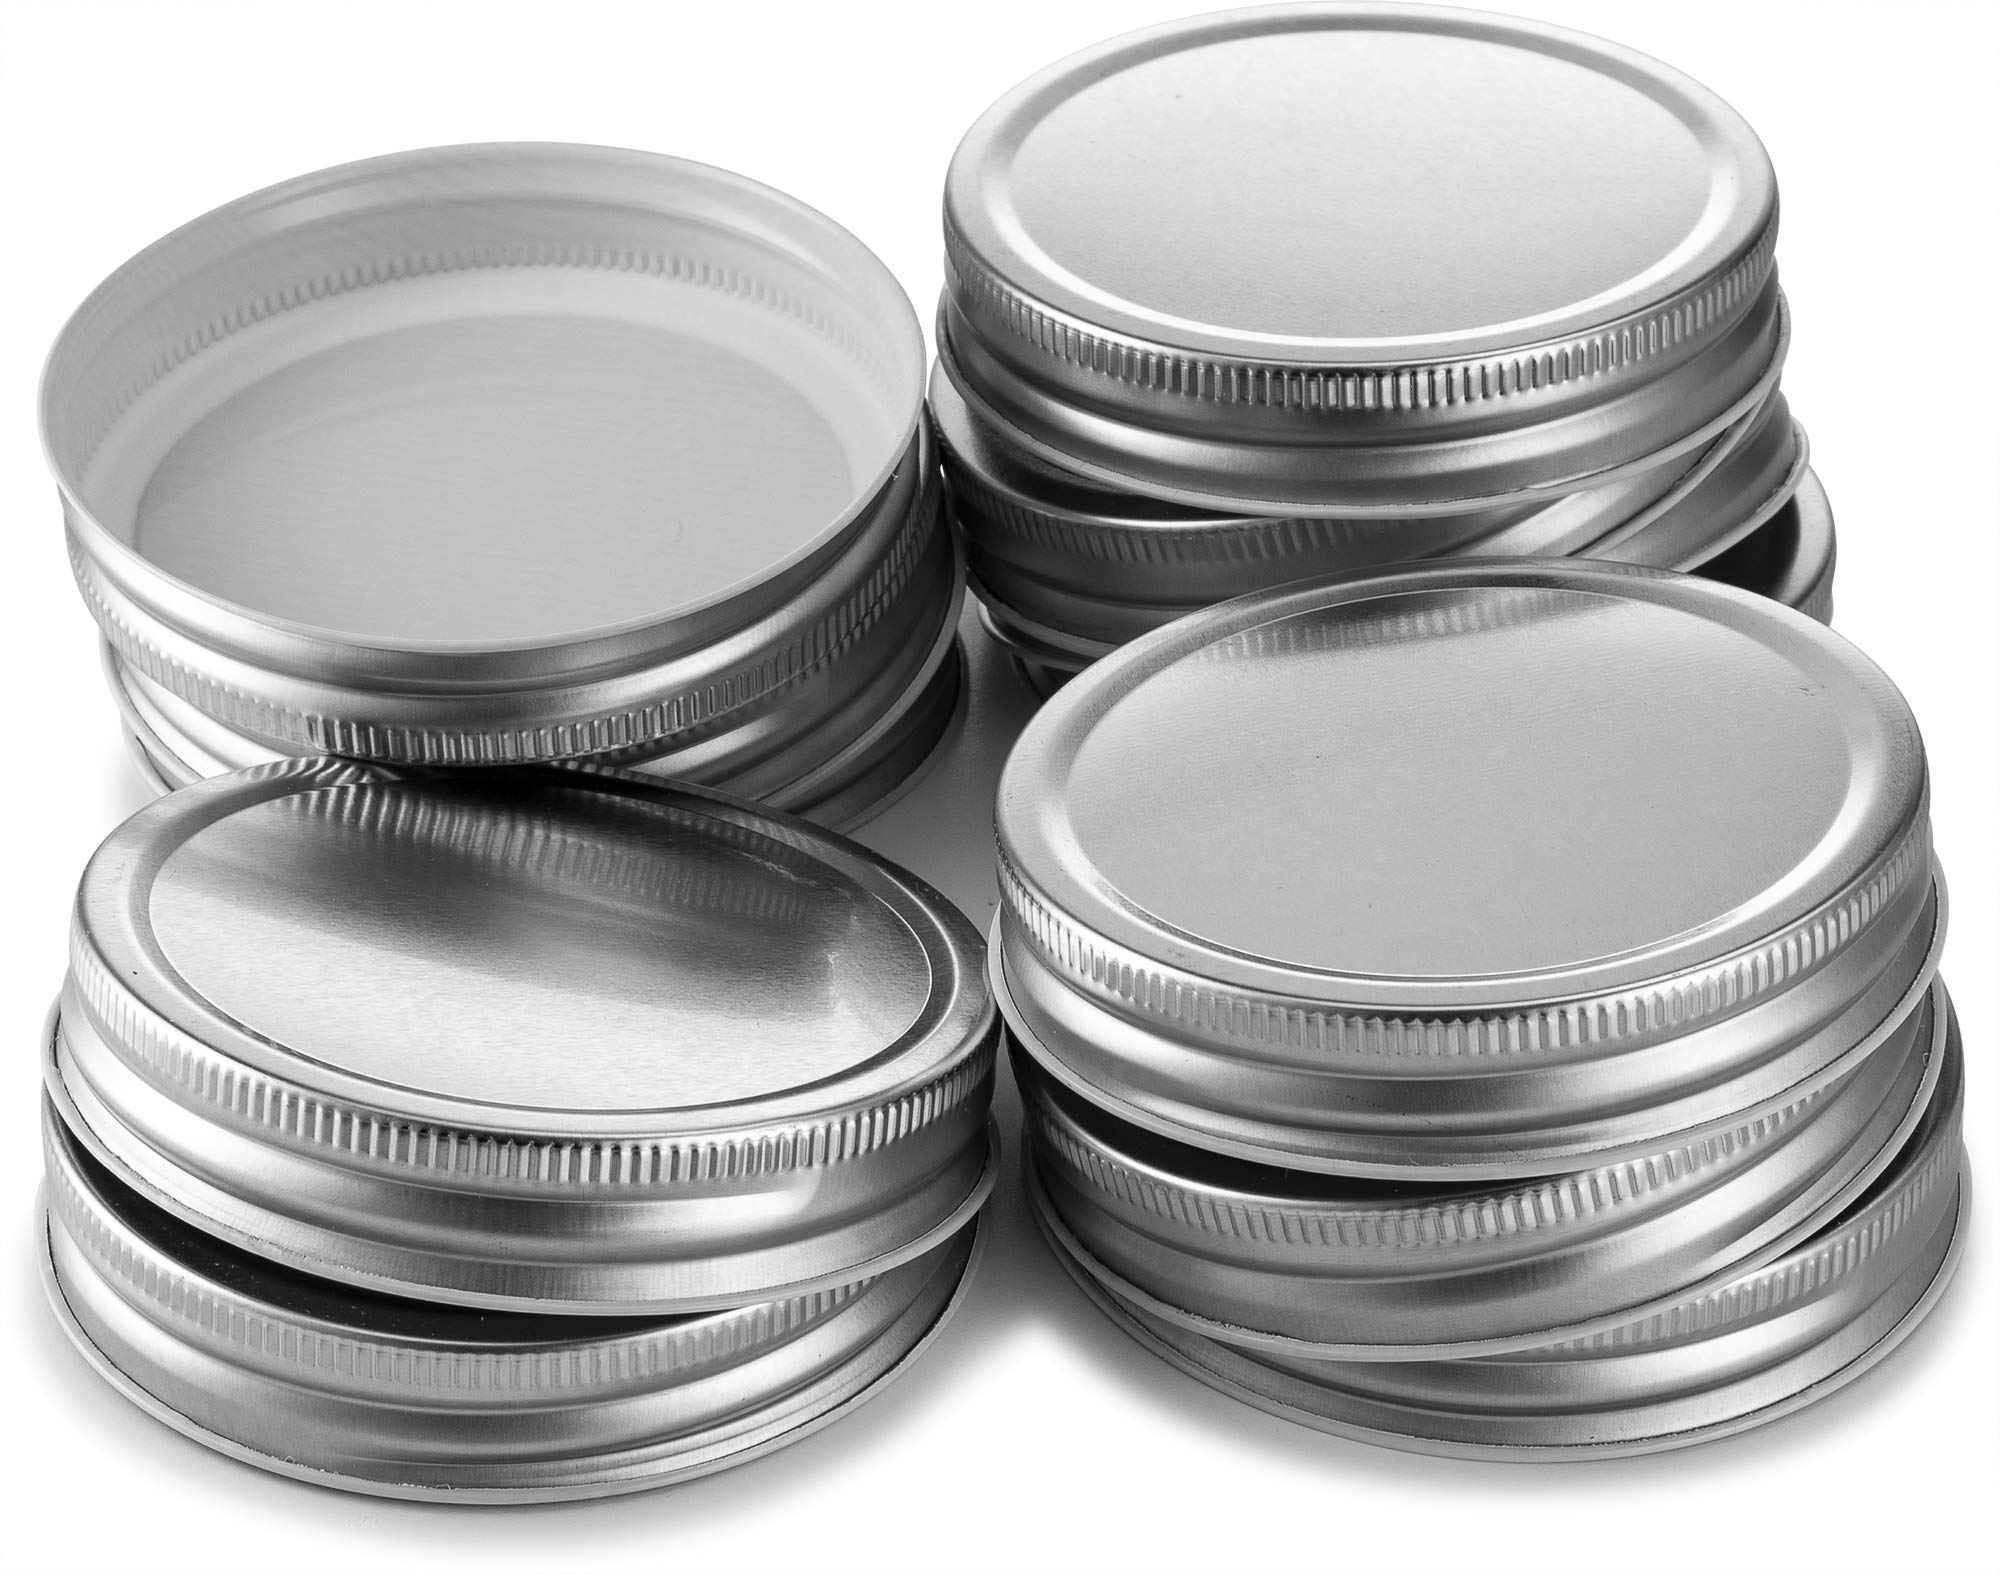 KooK Mason Jar Lids, Wide Mouth, Pack of 12. (Silver) by KooK